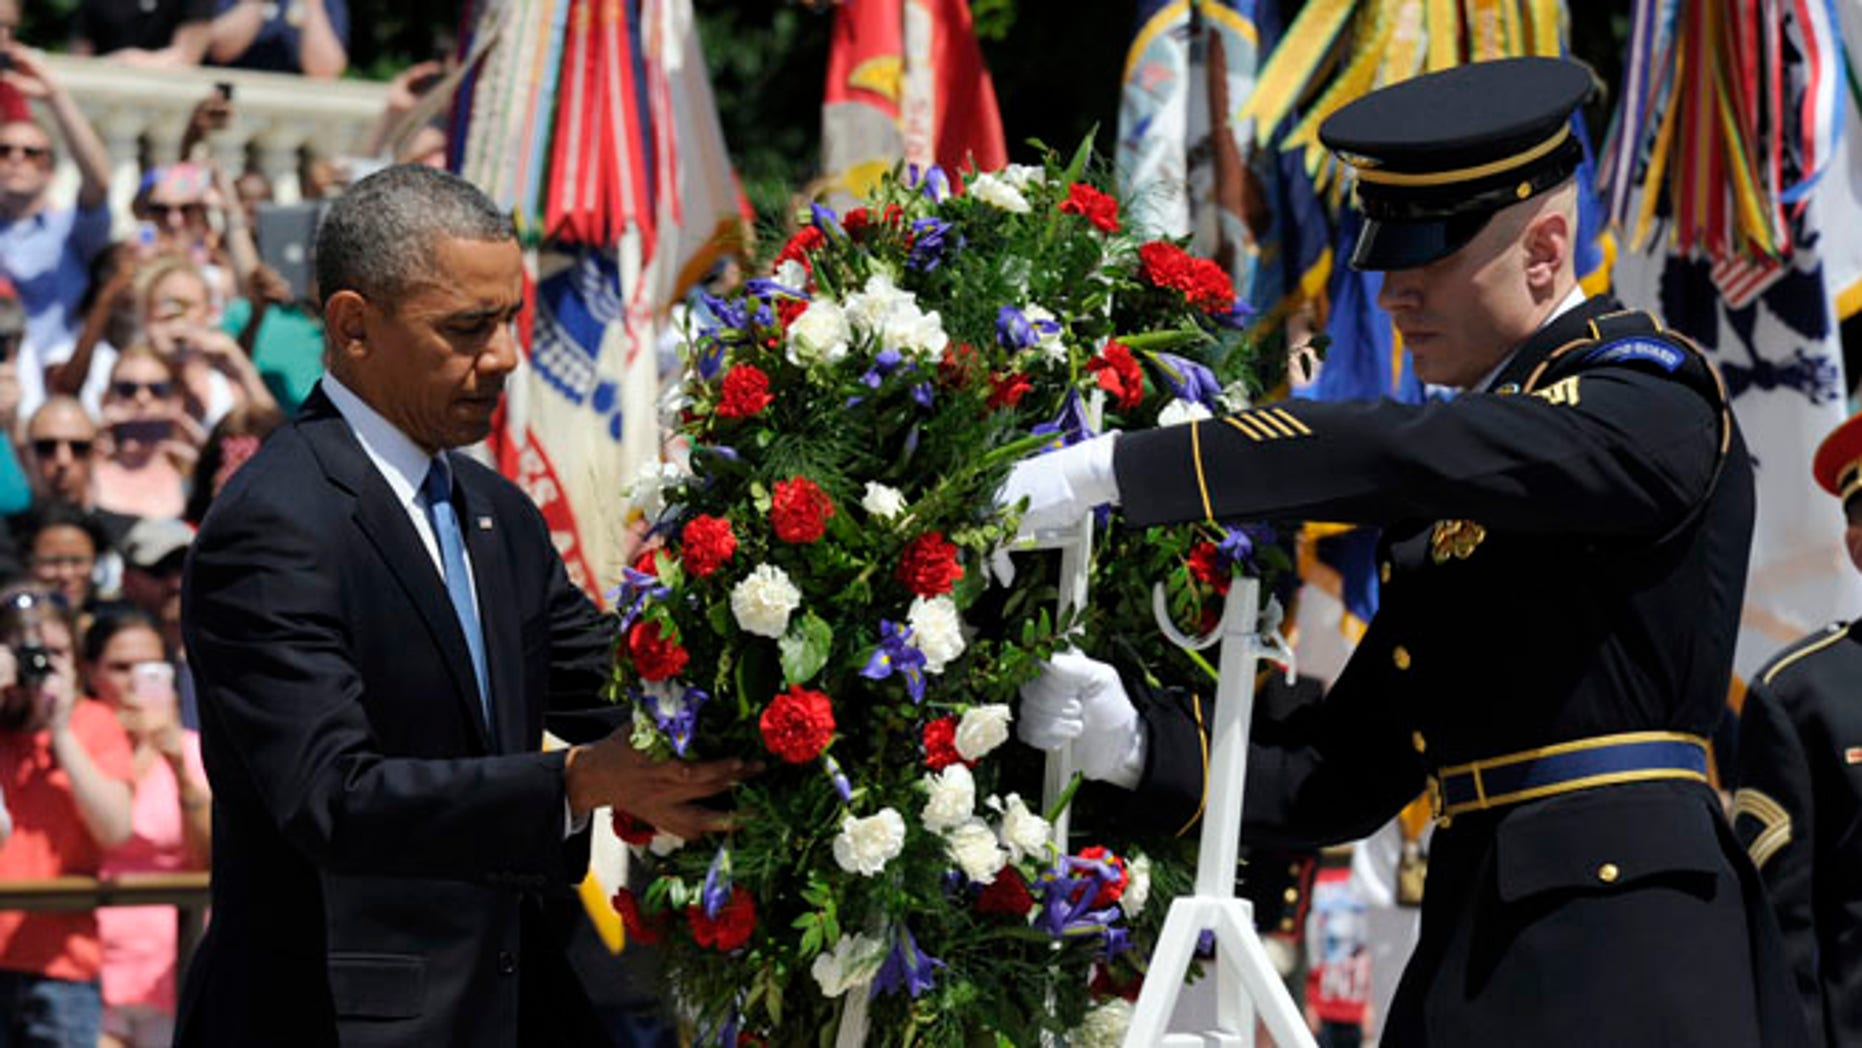 President Obama lays a wreath at the Tomb of the Unknowns at Arlington National Cemetery in Arlington, Va.